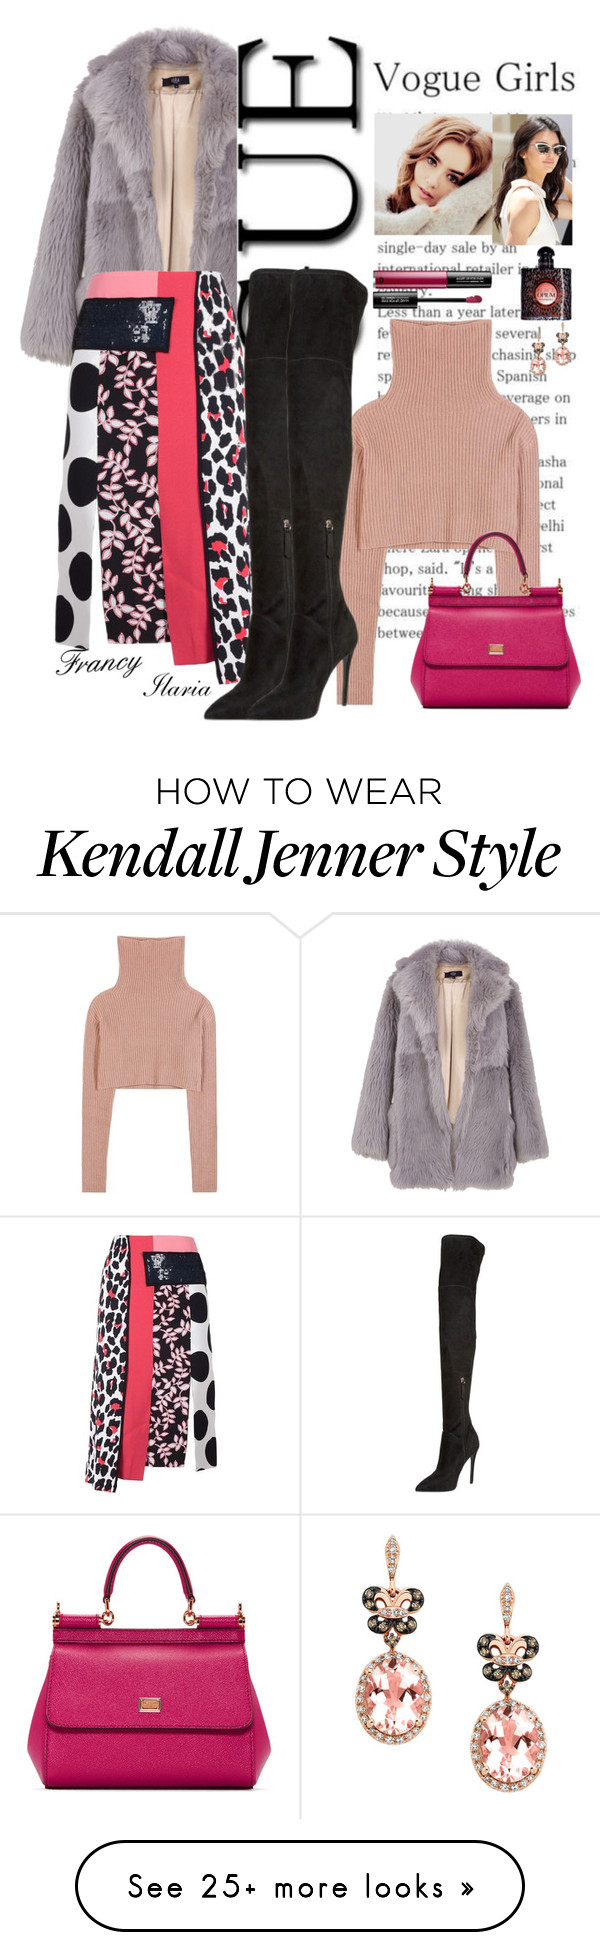 """""""Have a nice Saturday!"""" by estivamenti on Polyvore featuring TIBI, Valentino, MSGM, Kendall + Kylie, Dolce&Gabbana, MAKE UP FOR EVER, Yves Saint Laurent and Effy Jewelry"""